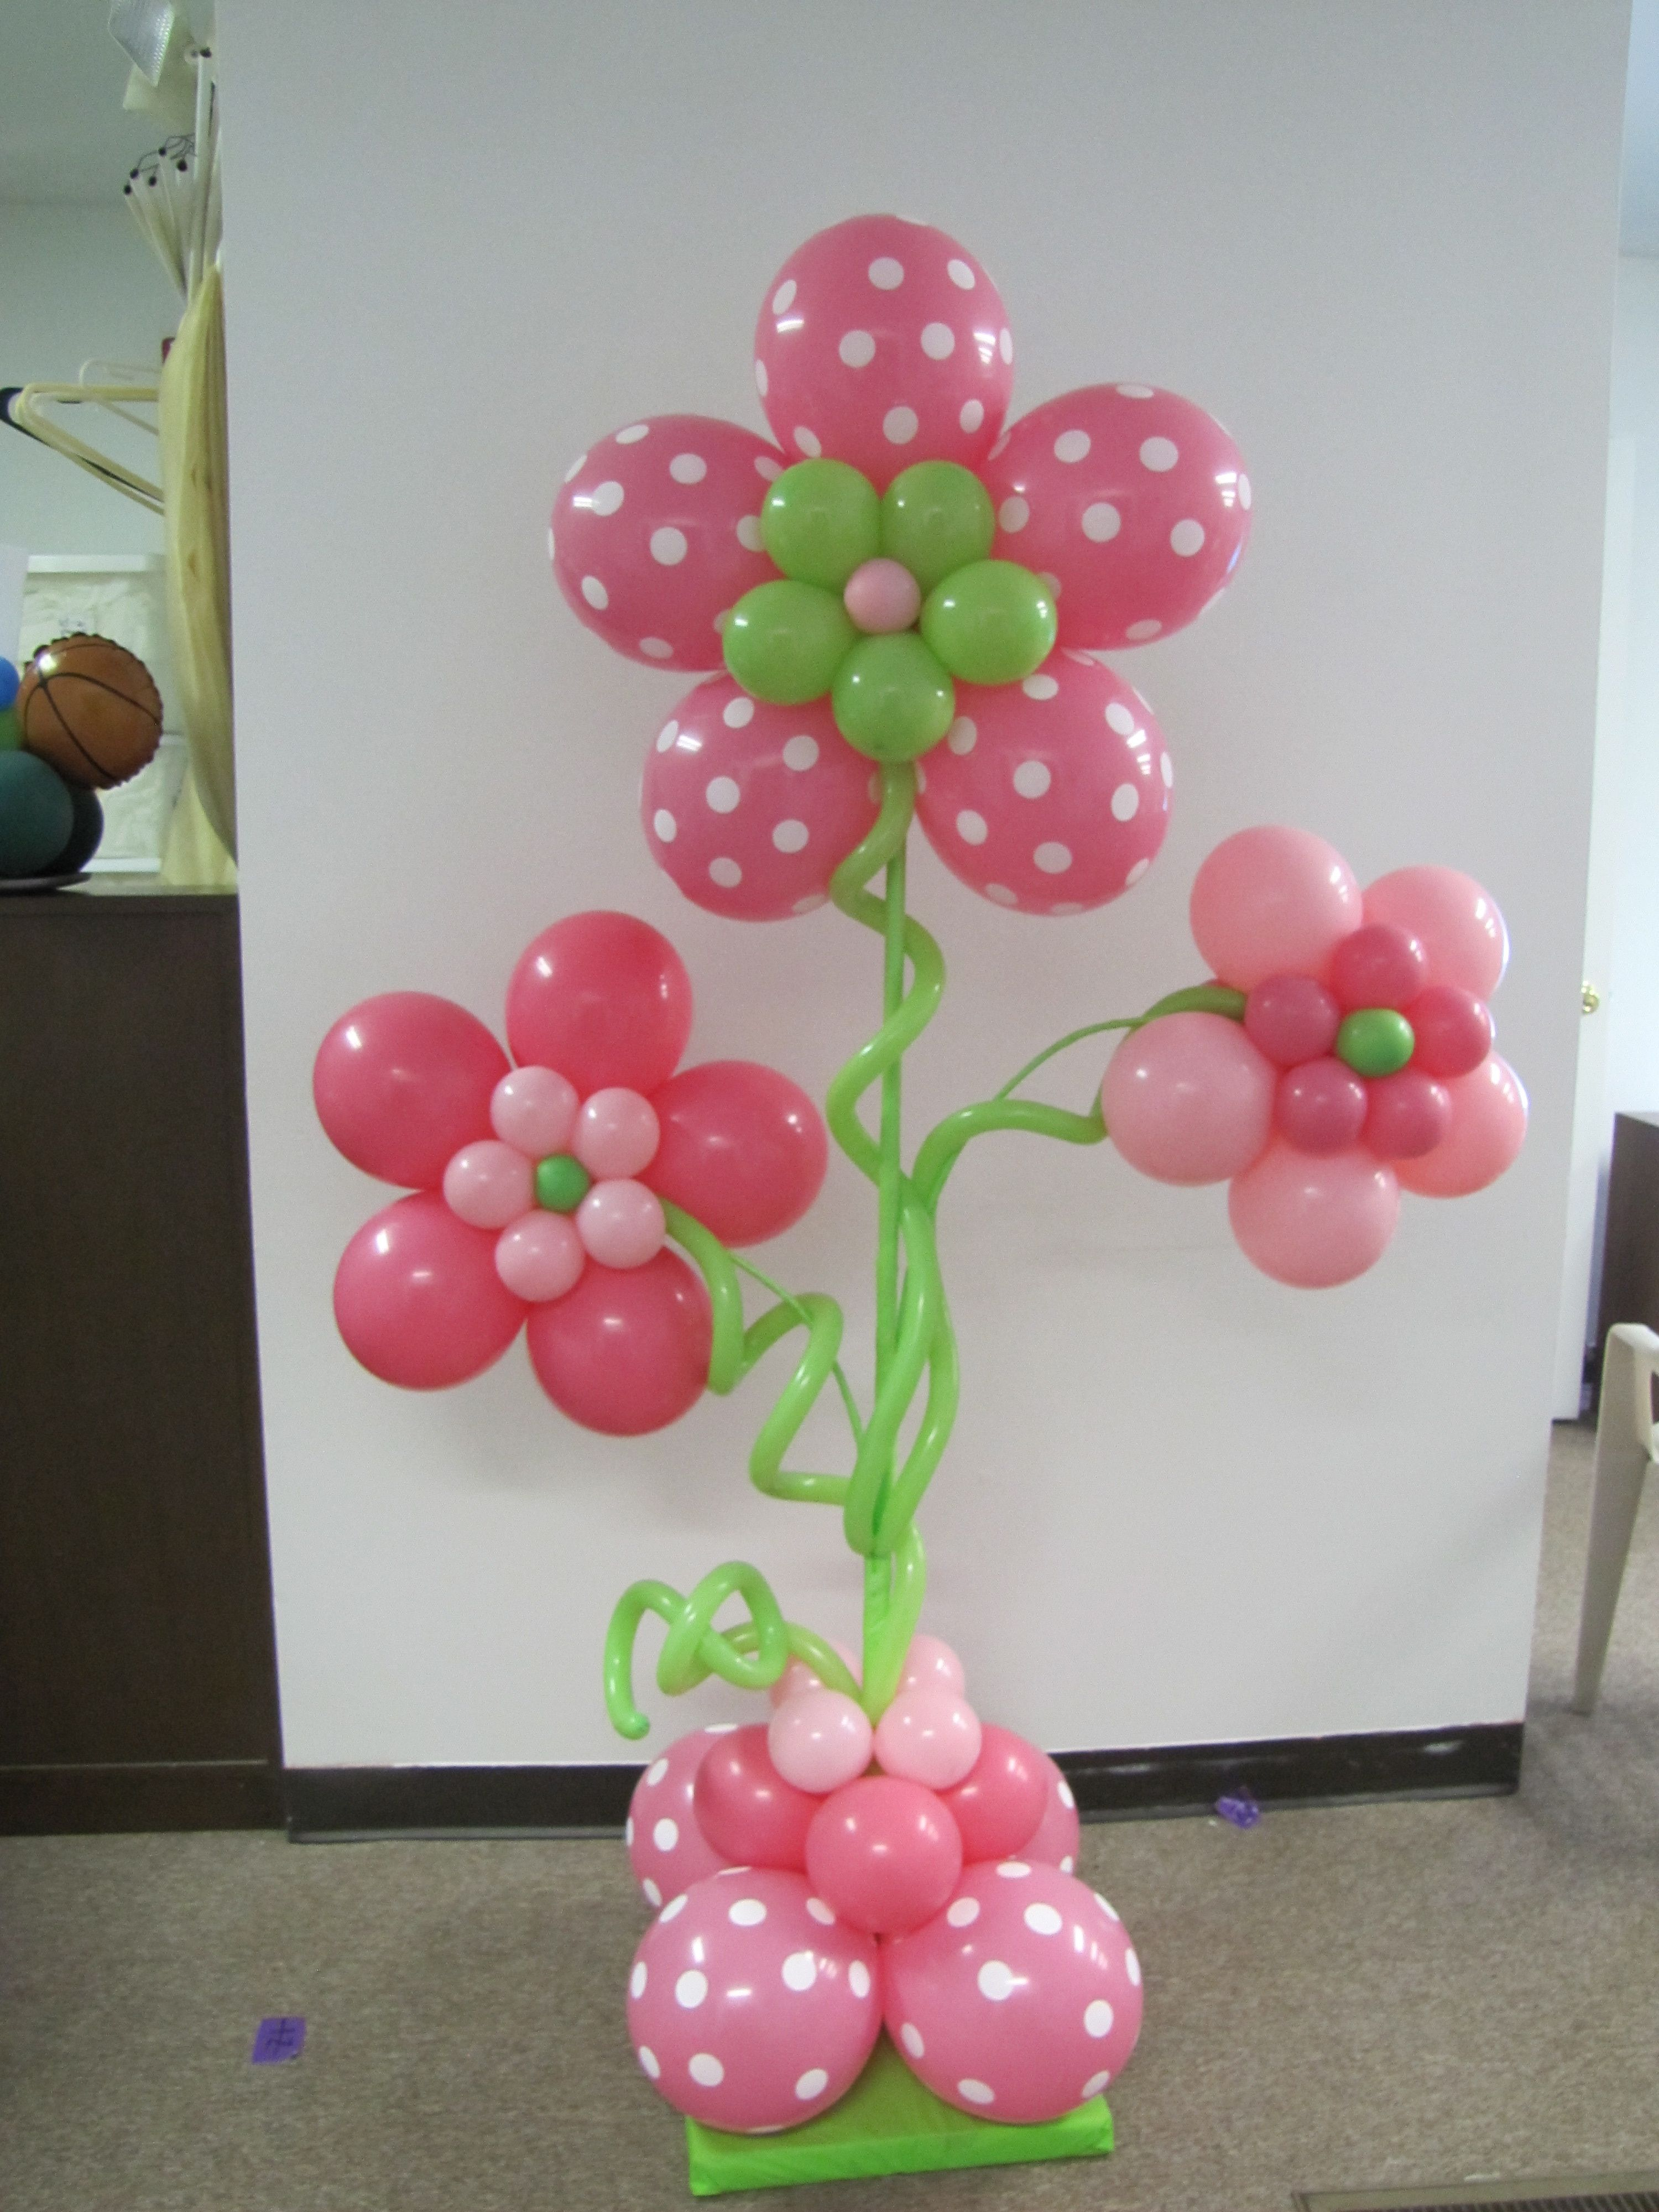 Secure balloons to straight and bendable plumbing pipe create fun secure balloons to straight and bendable plumbing pipe create fun balloon sculptures izmirmasajfo